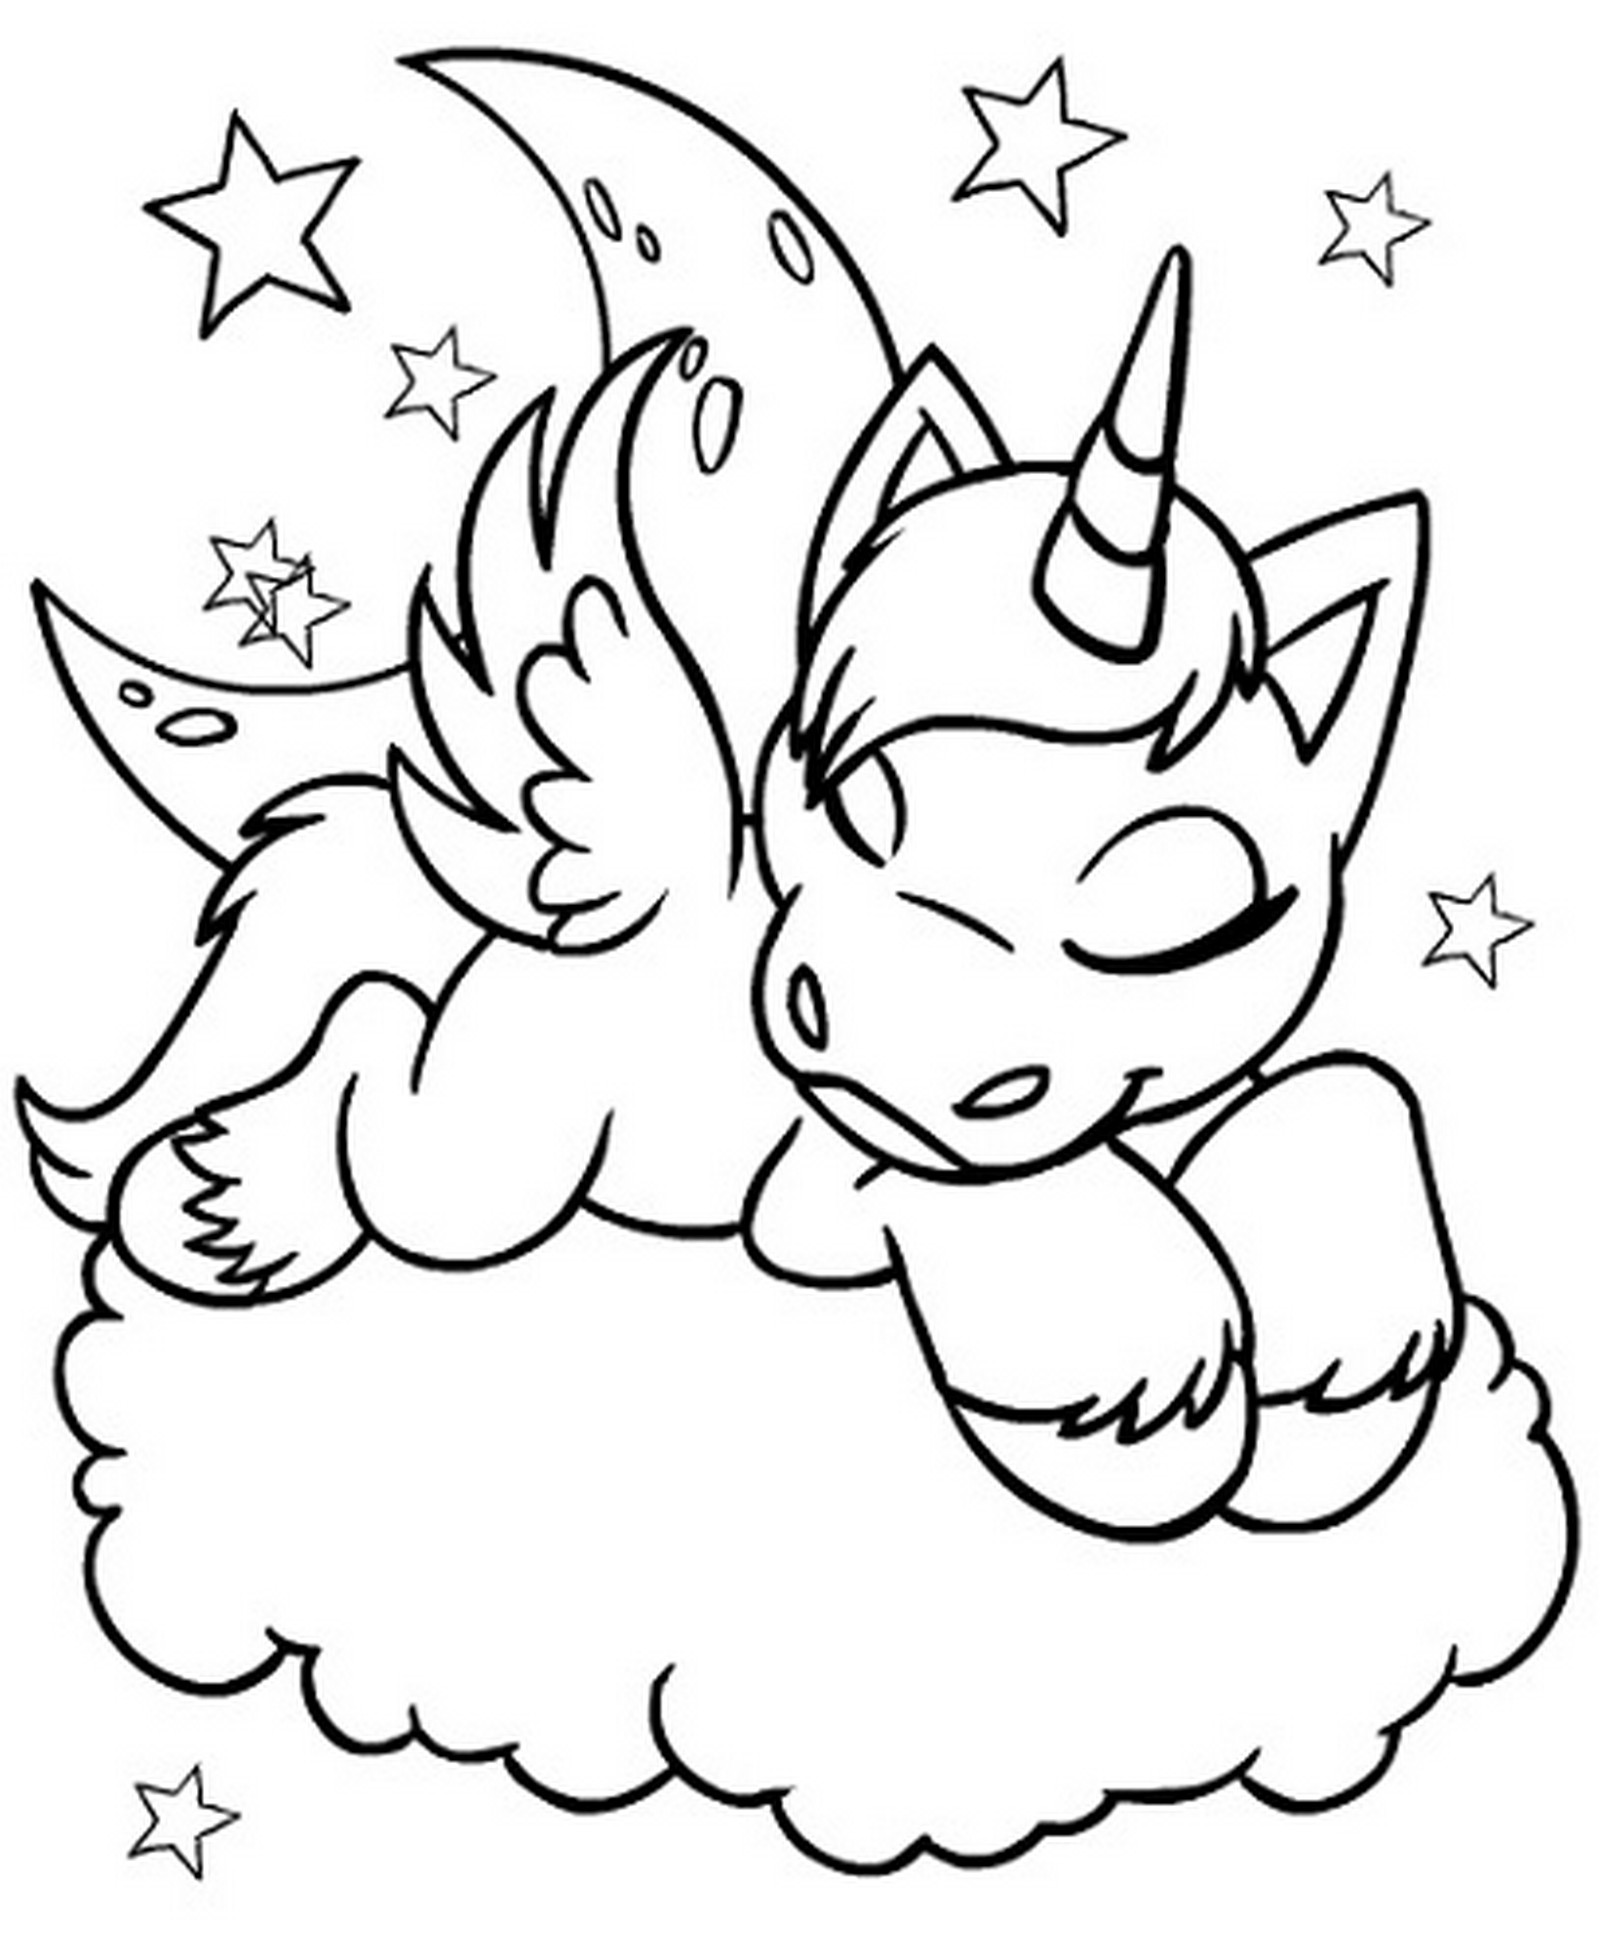 coloring pages of unicorns unicorn coloring pages to download and print for free of coloring unicorns pages